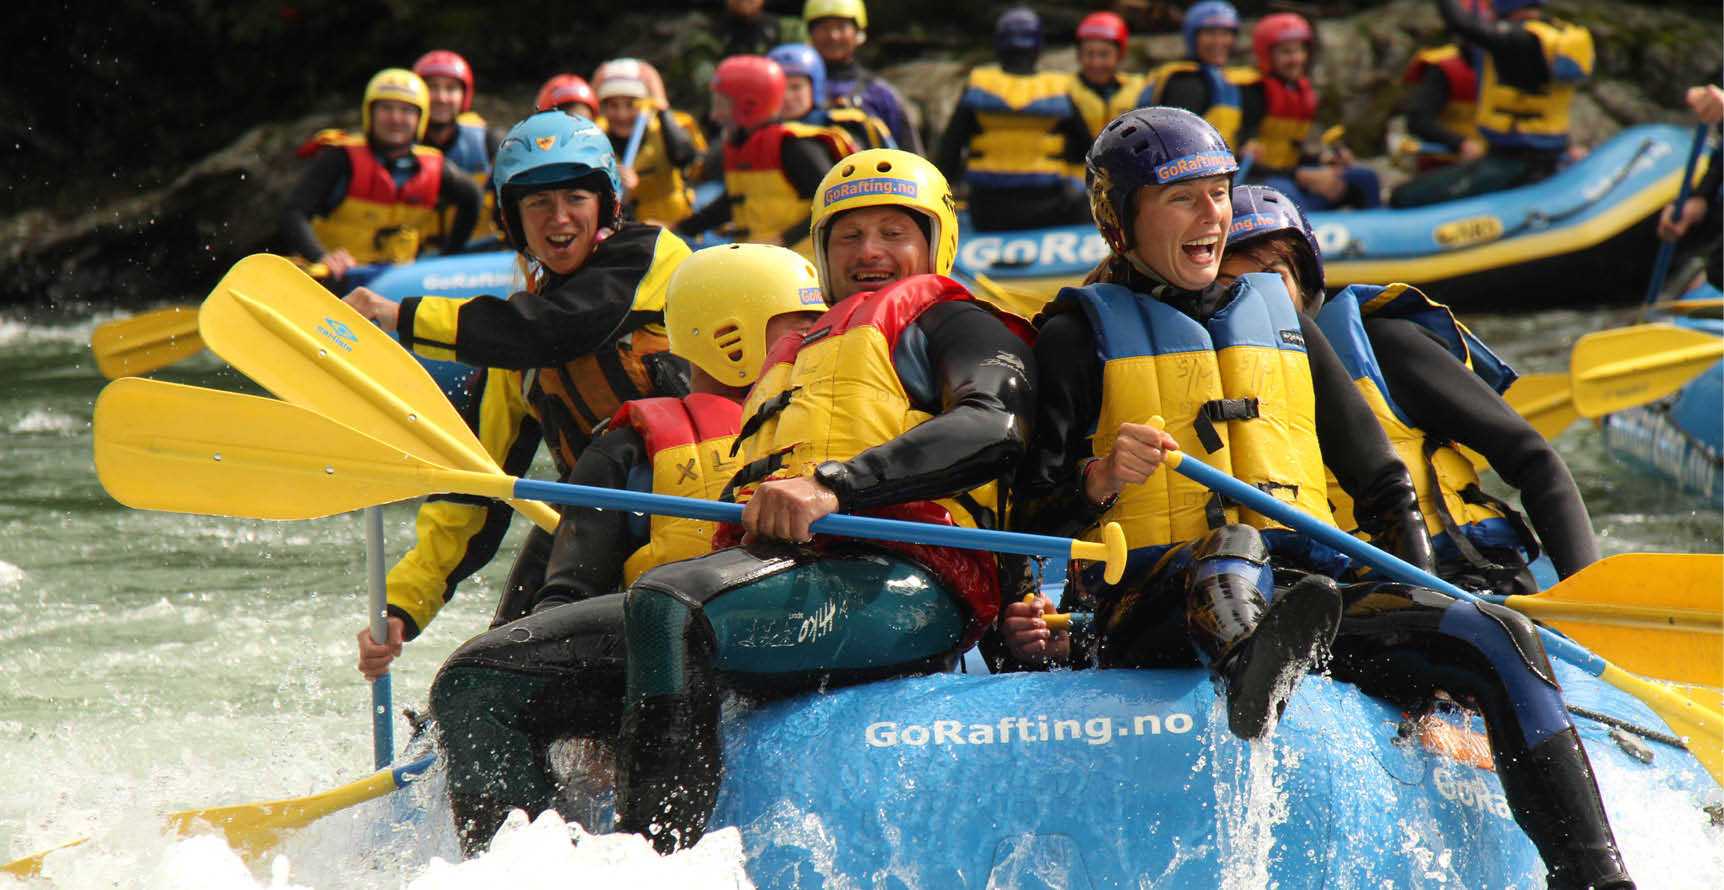 Rafting in Sjoa